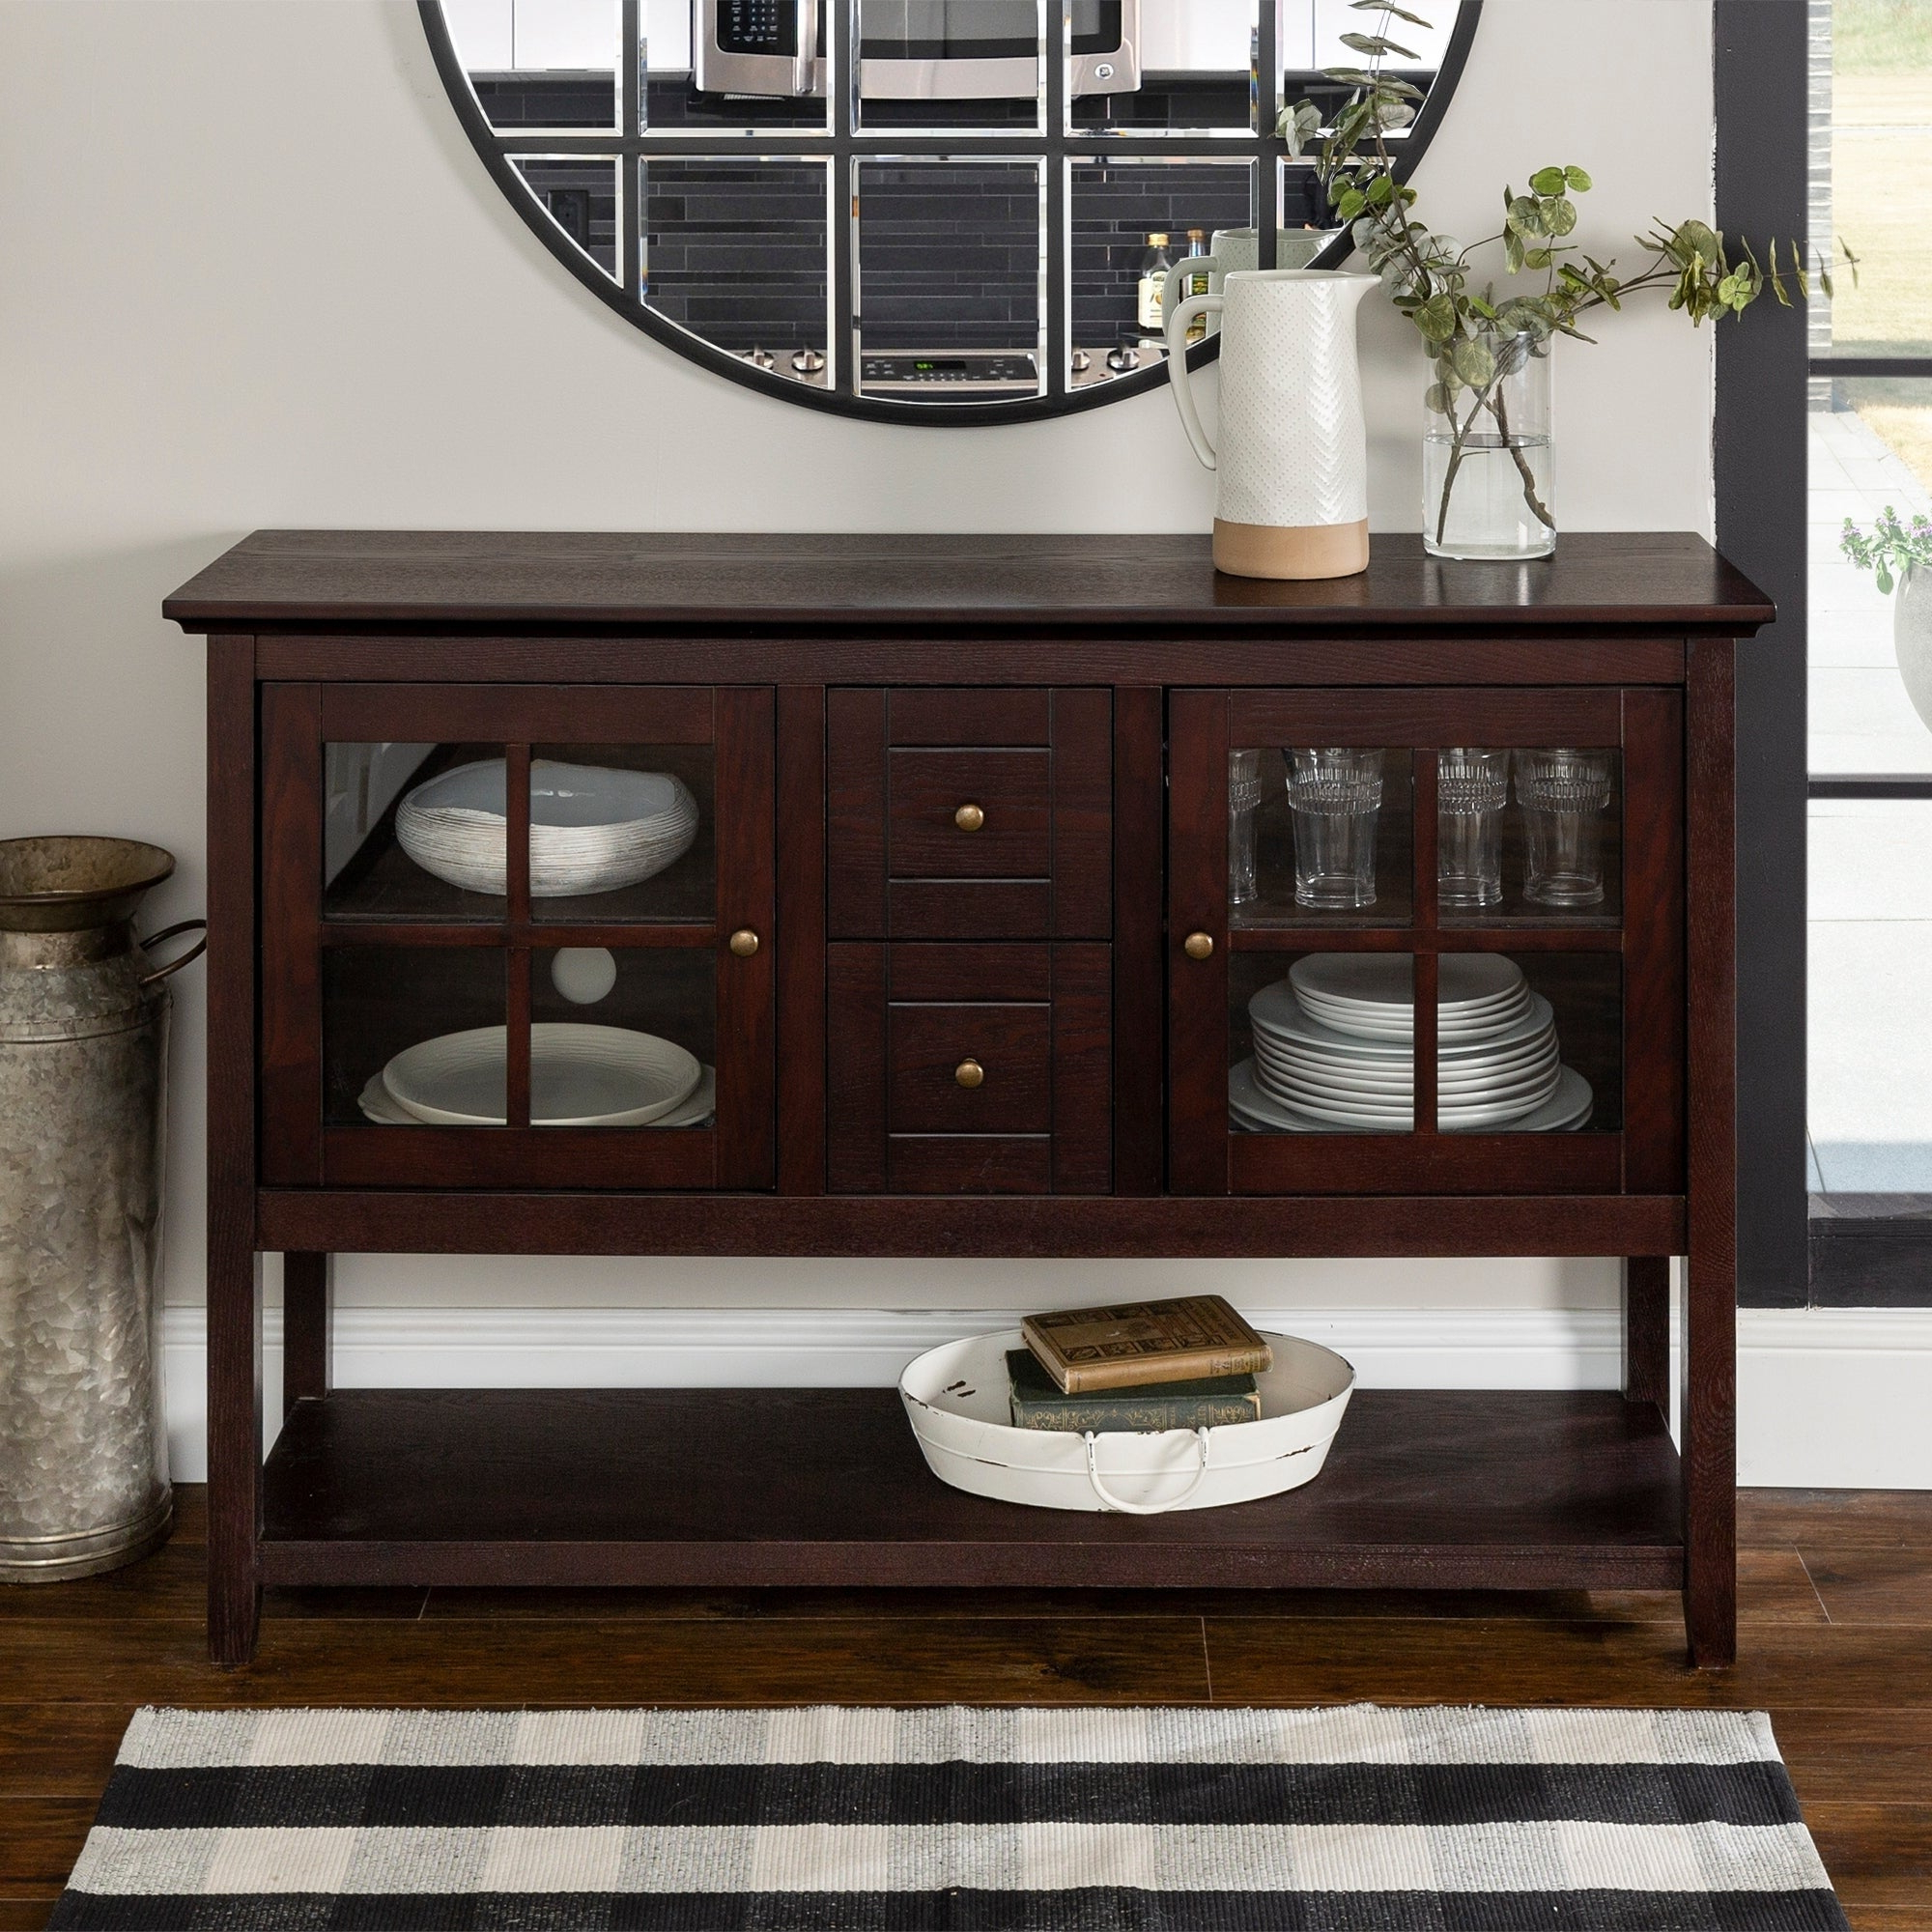 Middlebrook Designs 52 Inch Buffet Cabinet, Espresso, Tv Stand Console,  Entertainment Center – 54 X 16 X 35H Regarding Espresso Wood Multi Use Buffets (View 13 of 20)